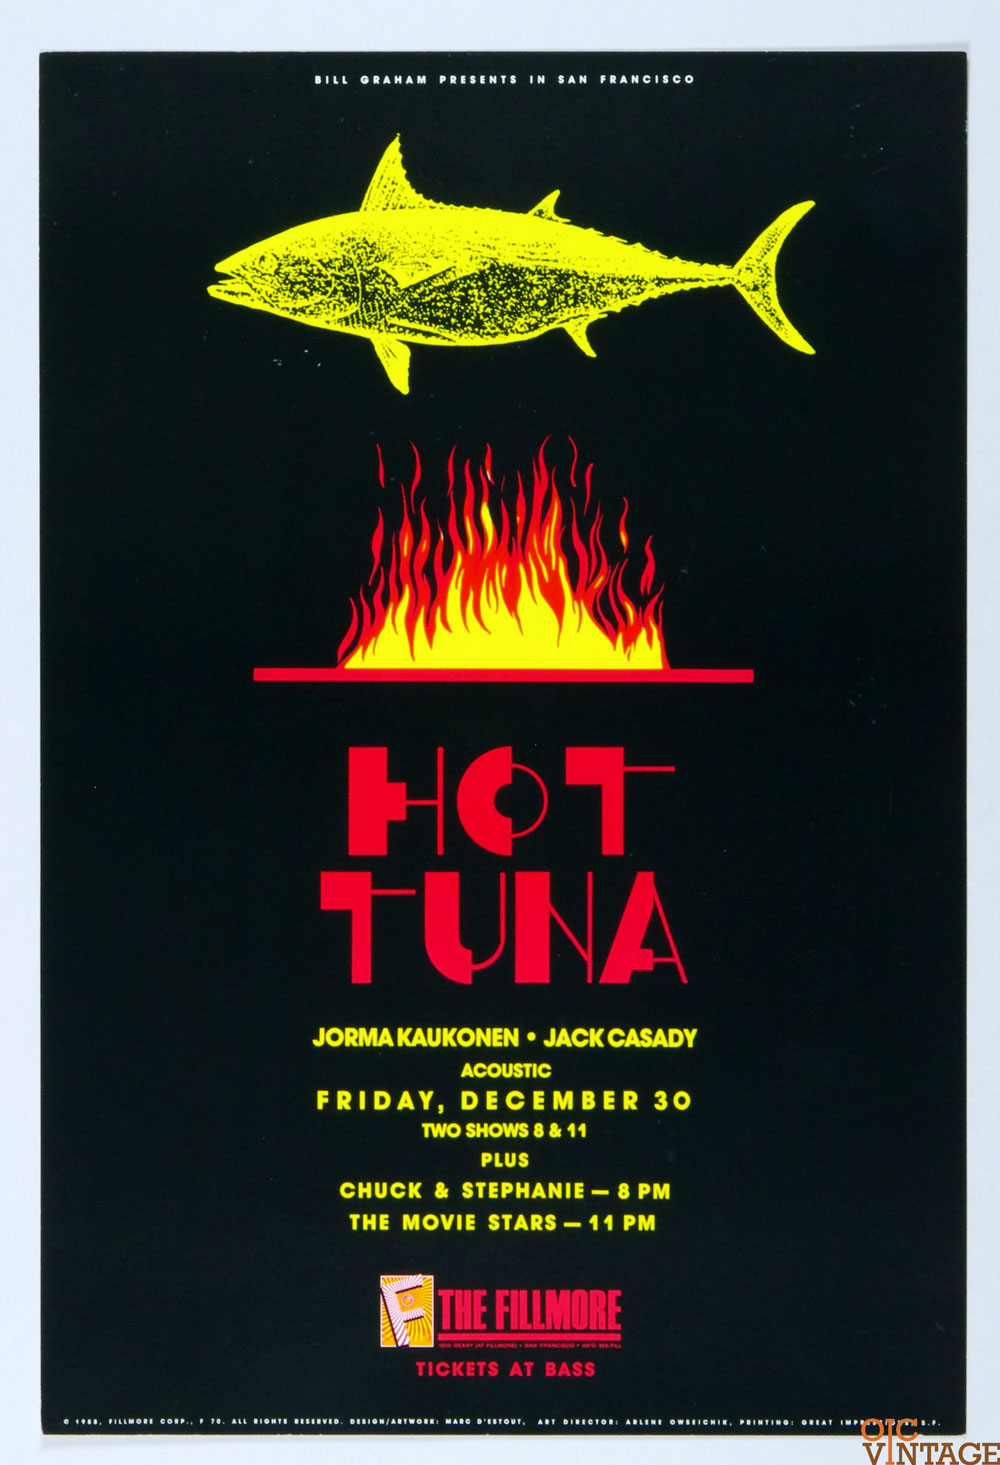 Hot Tuna Jorma Kaukonen Jack Cassidy Poster 1988 Dec 30 New Fillmore